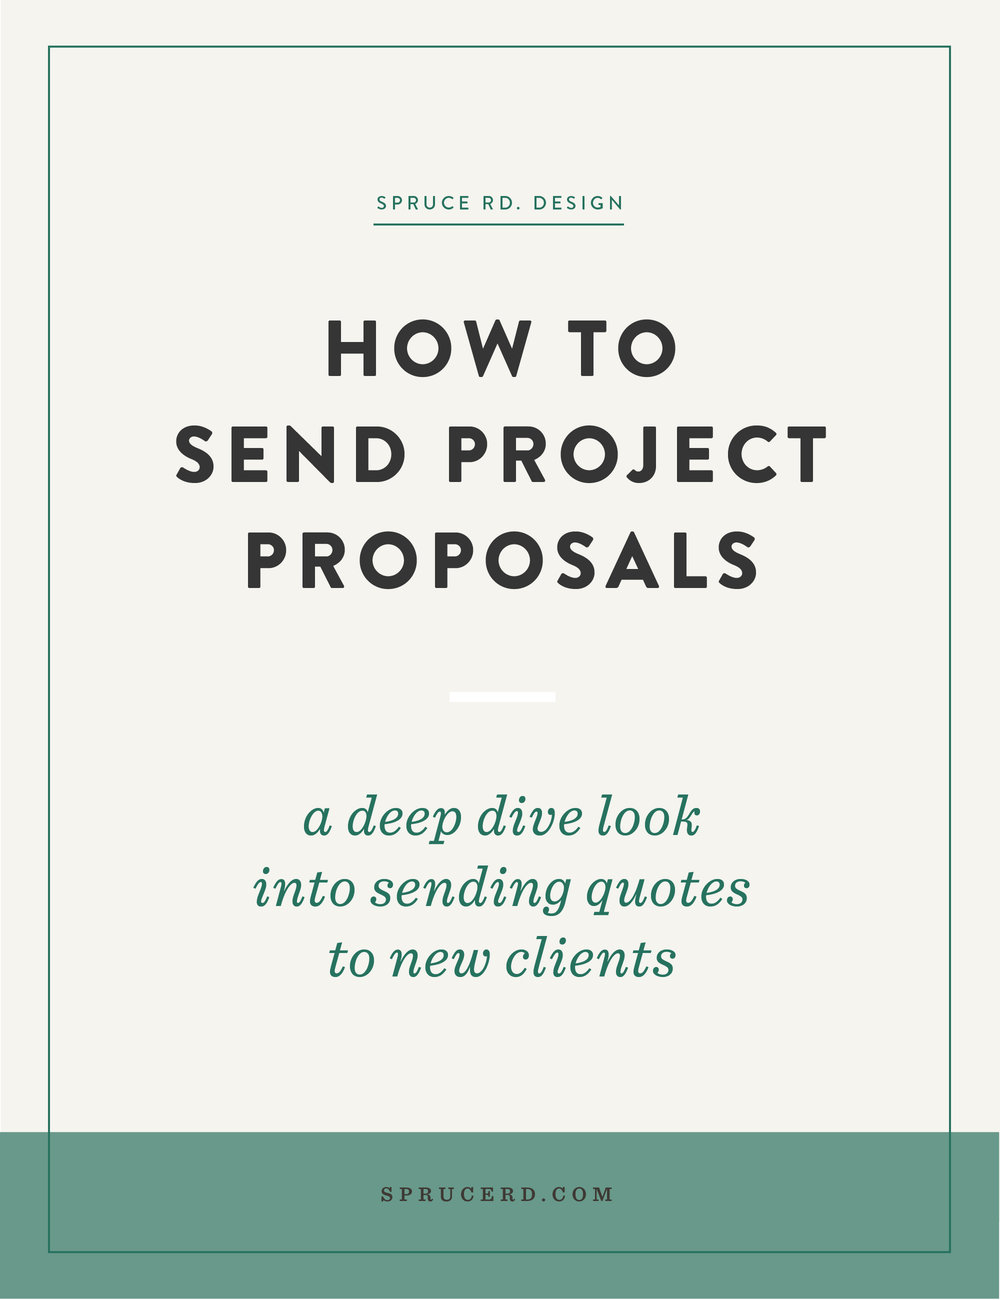 How to send project proposals | Spruce Rd. | There are a million ways to book clients and wow them with your proposals, and I've learned a thing or two over the years. What software to use? How to build in urgency? Here's exactly how we send quotes to prospective clients.